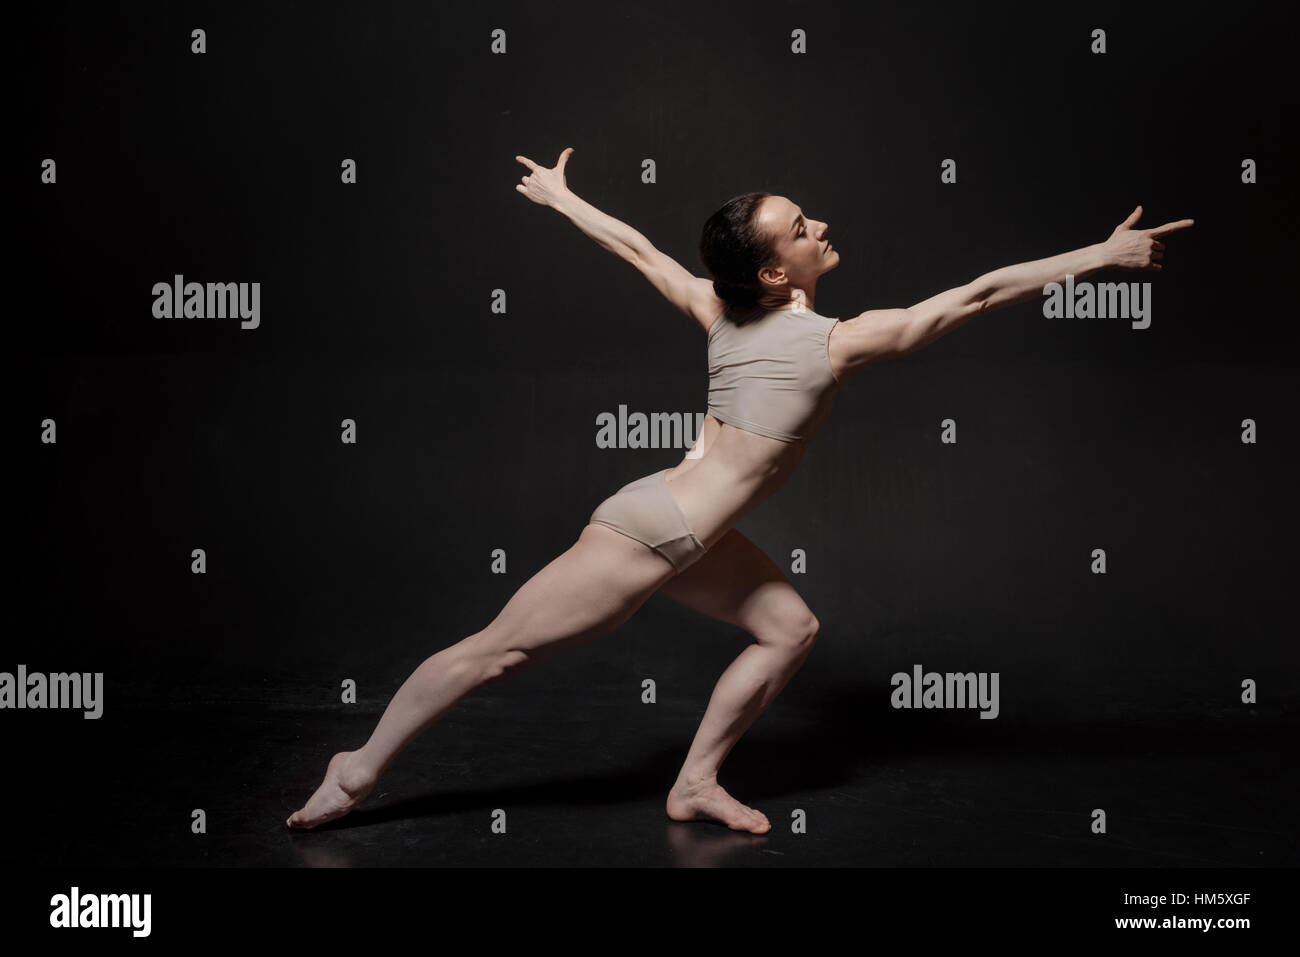 Airy young ballet dancer posing in the studio - Stock Image